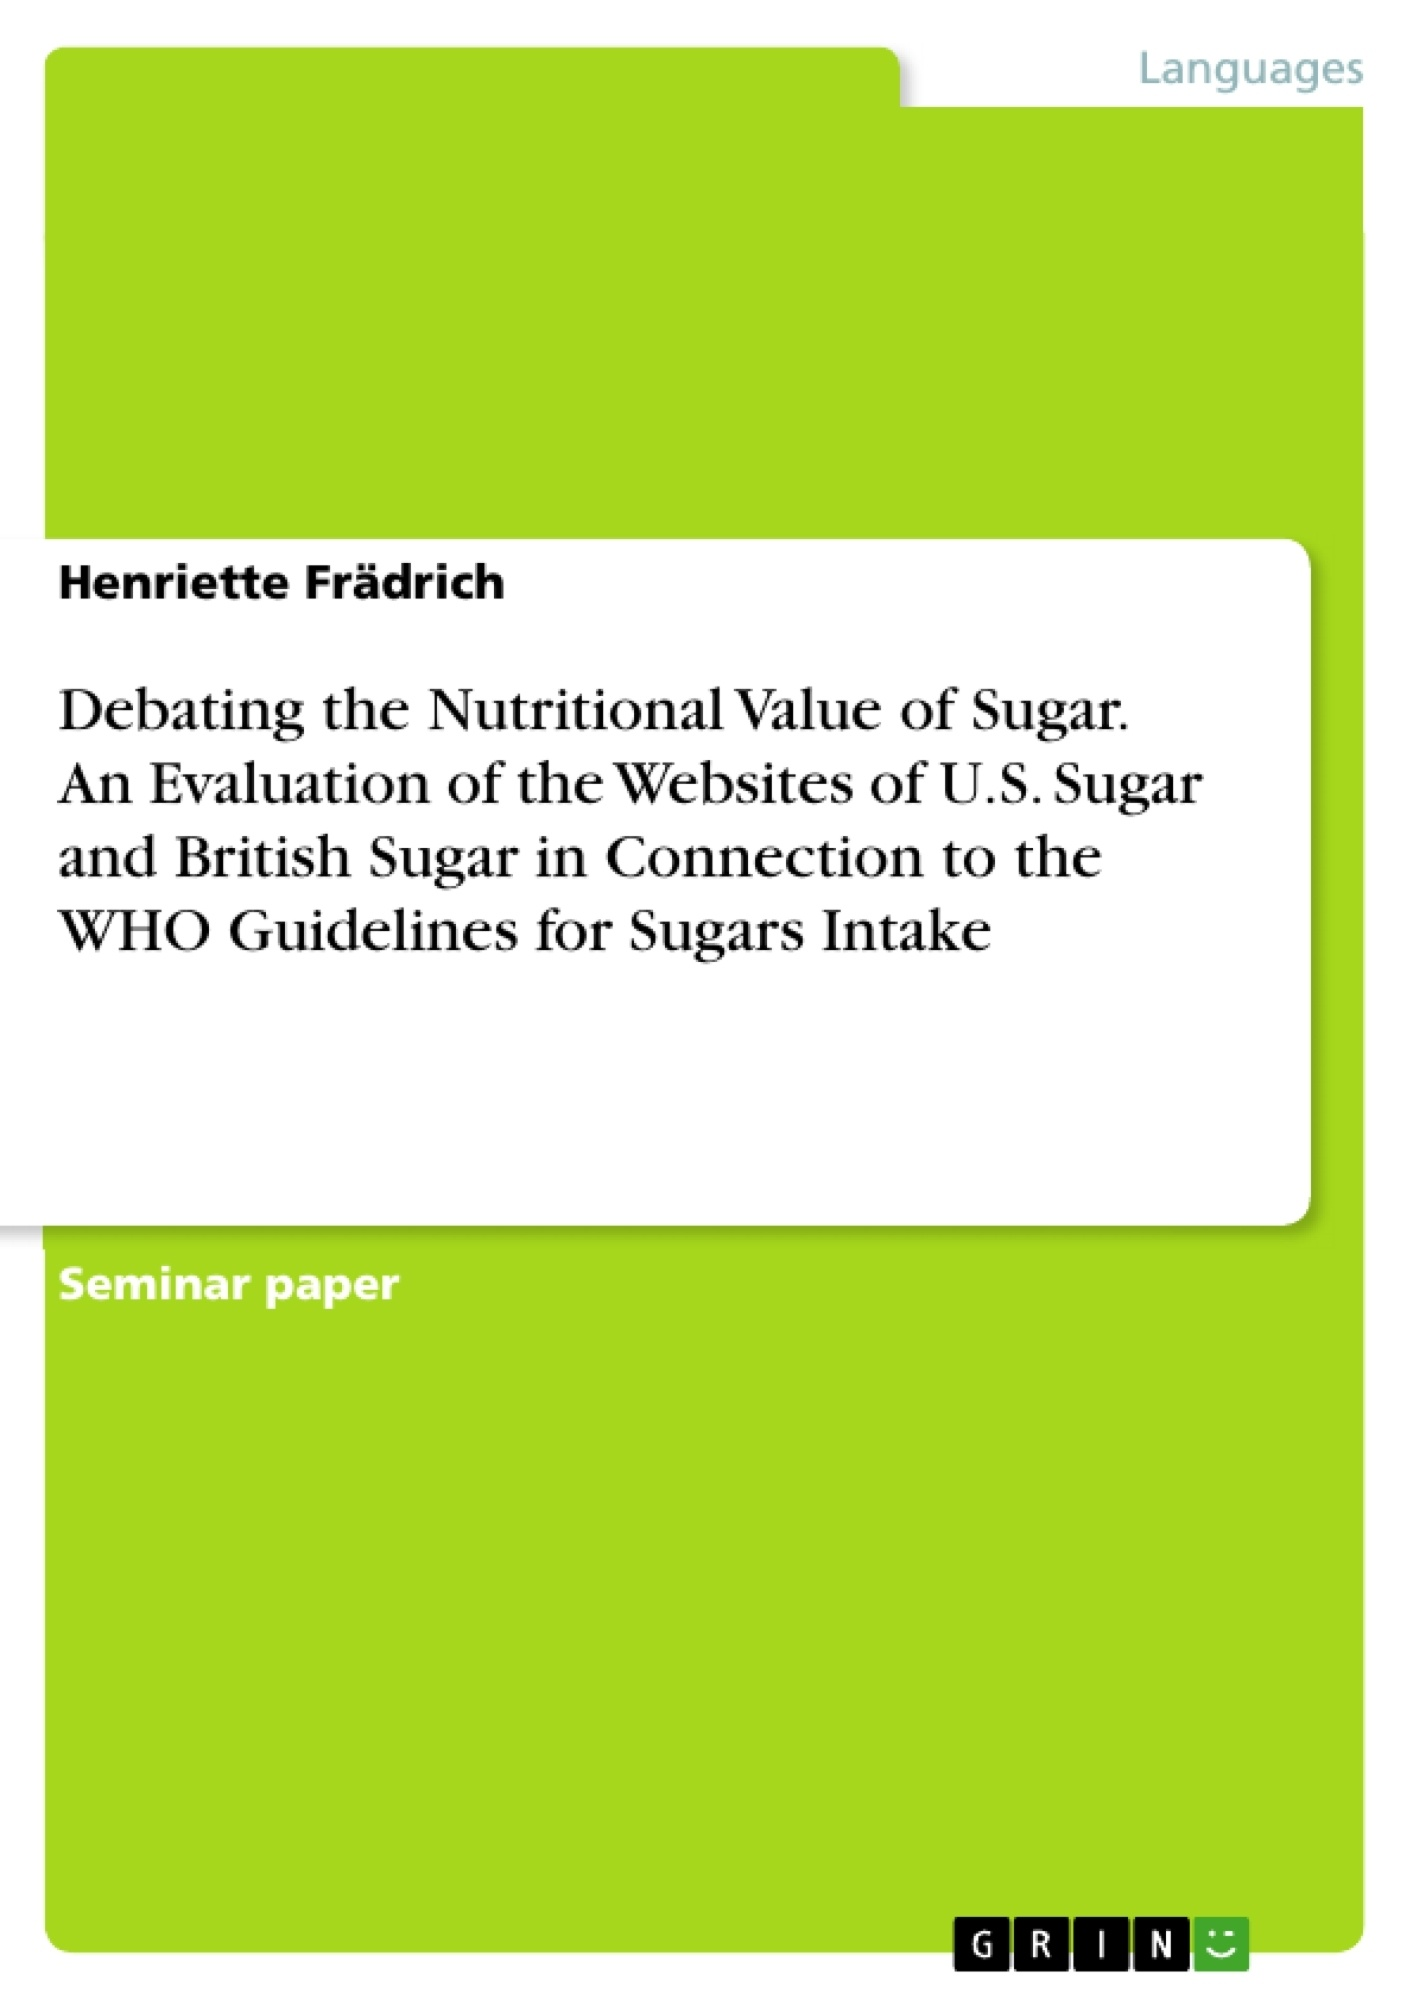 Title: Debating the Nutritional Value of Sugar. An Evaluation of the Websites of U.S. Sugar and British Sugar in Connection to the WHO Guidelines for Sugars Intake